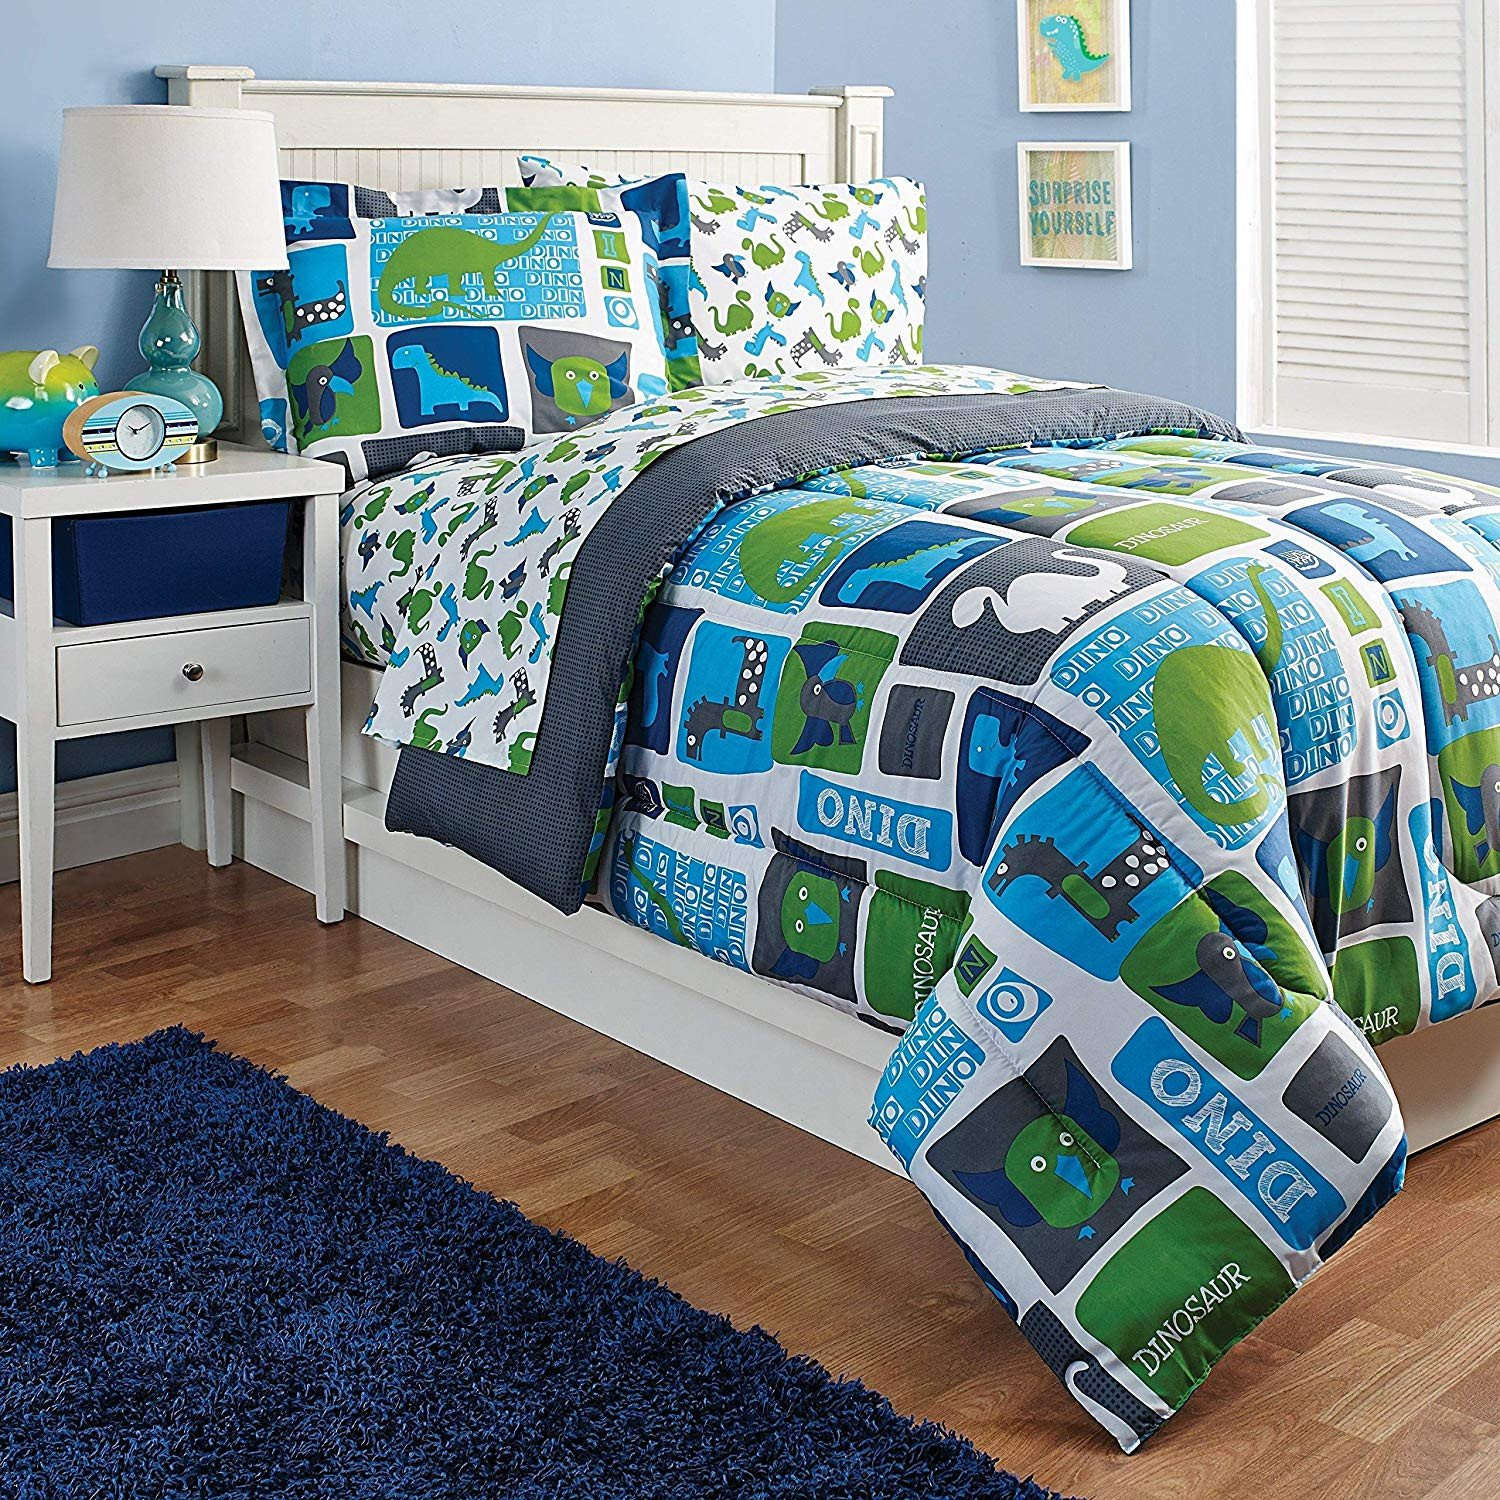 Cheap Childrens Bedroom Set New Amazon Dinosaurs Kids Sheet Set Twin Size Blue Green